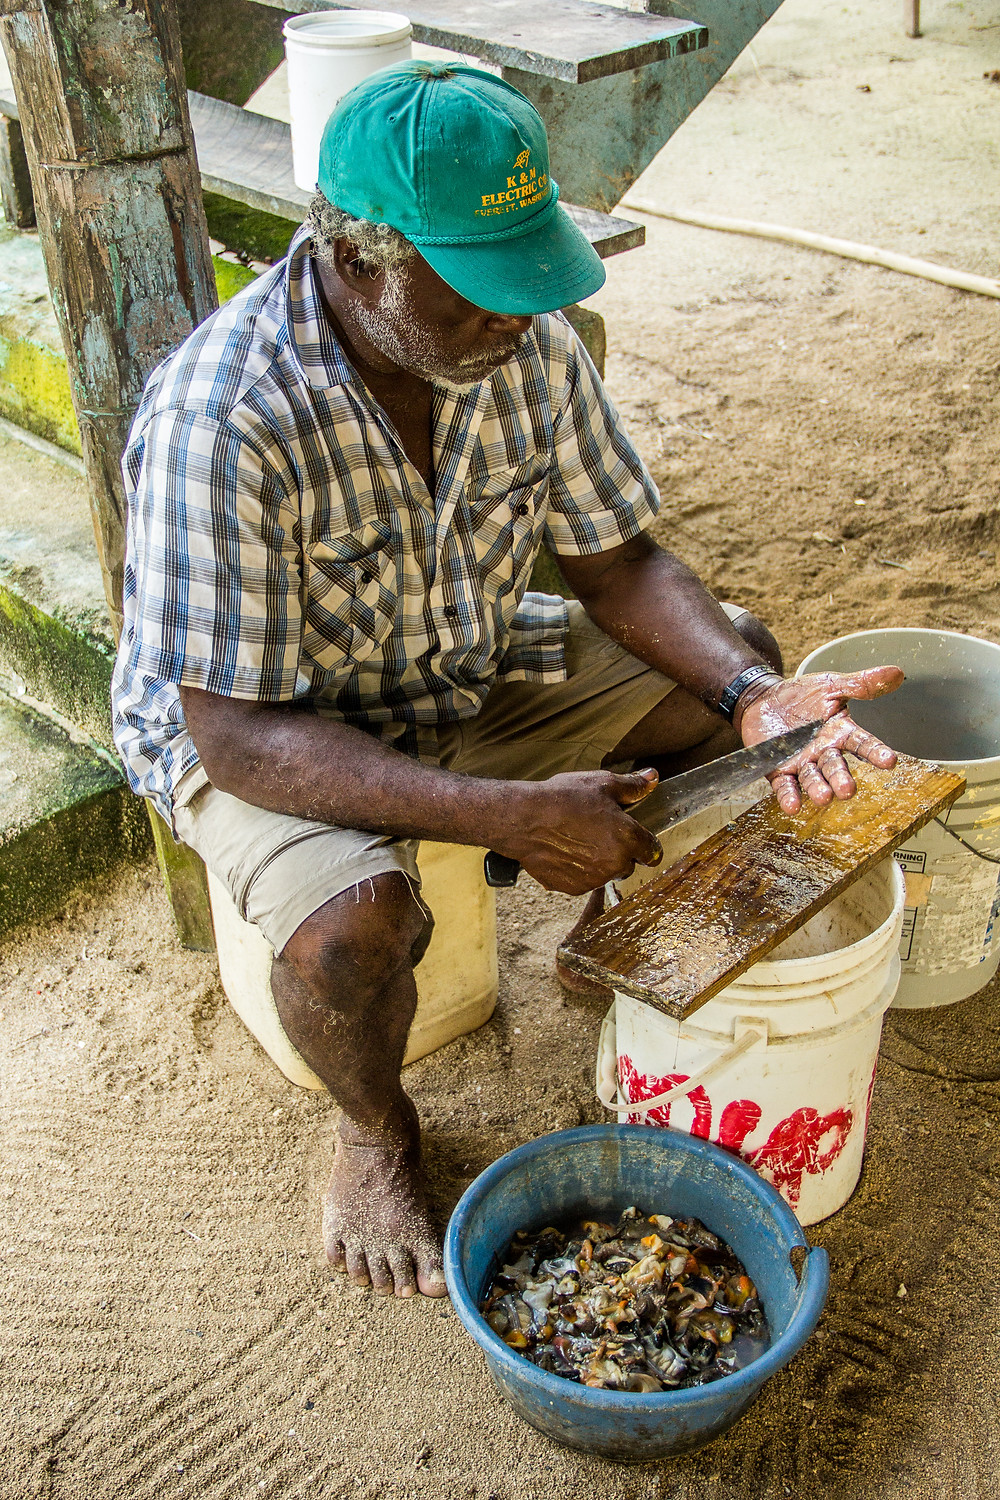 Buck, a local fisherman on Tobacco Caye celebrates the completion of his mid-morning task, he just cleaned ~ 20 lbs of conch. Man living on the sea.